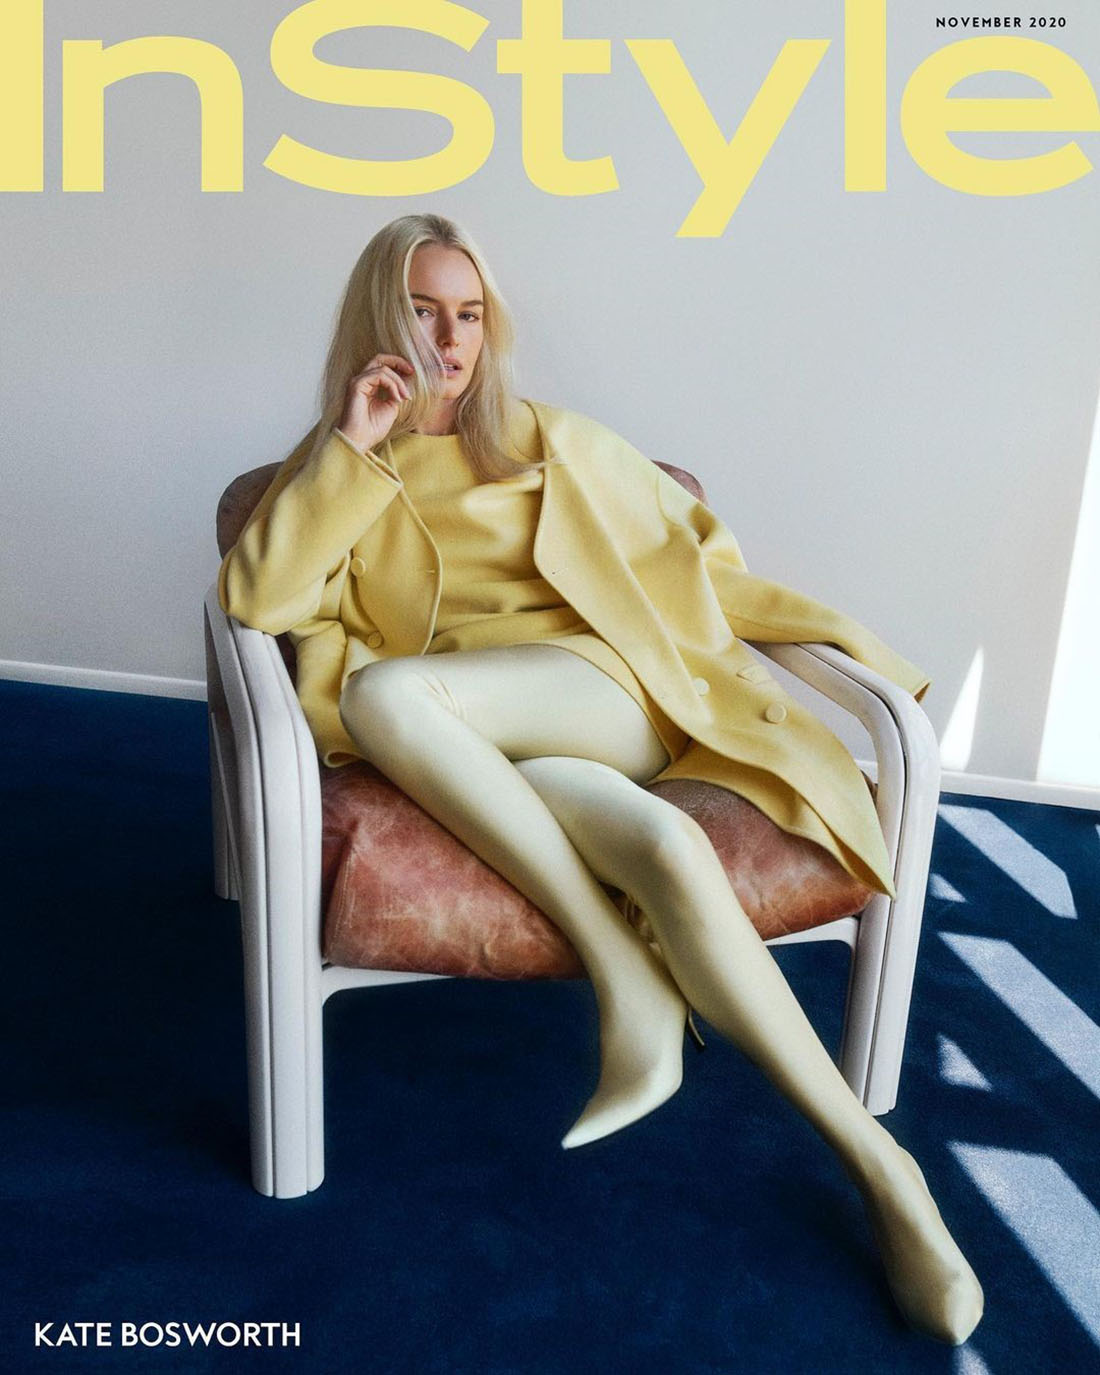 Kate Bosworth covers InStyle US November 2020 by Olivia Malone